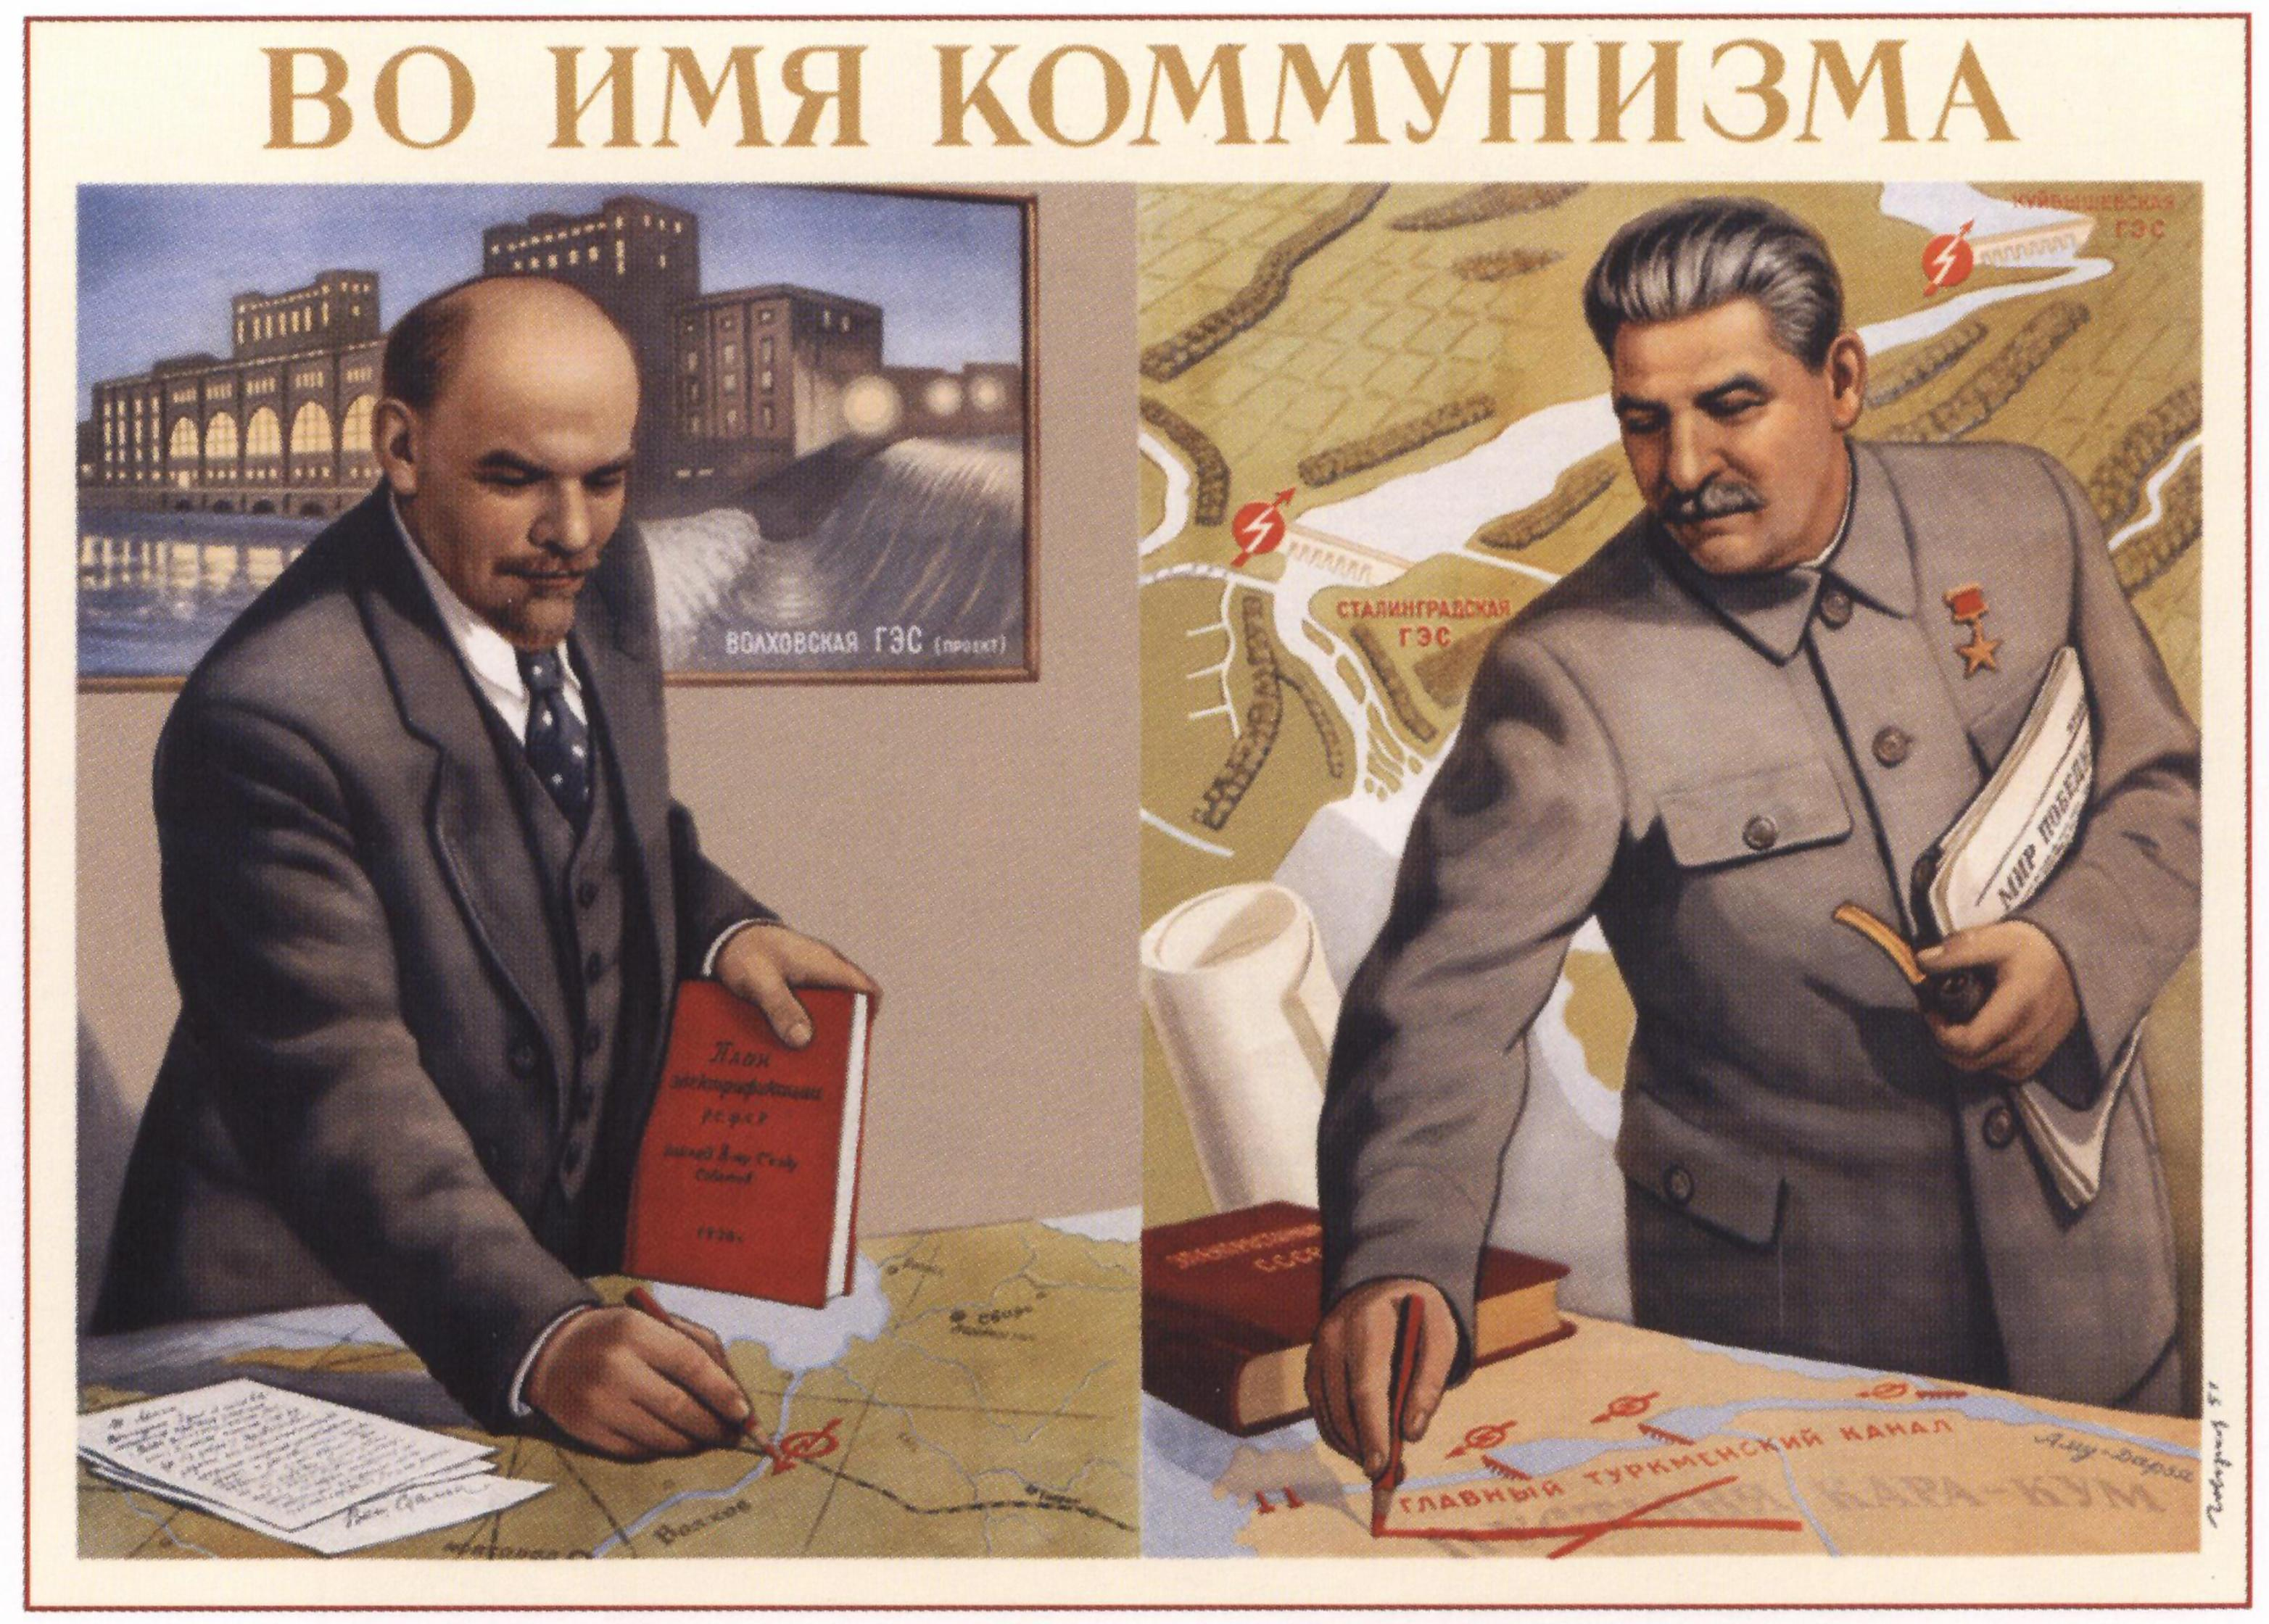 the changes in the ussr economy made by stalin Stalin sought to control the hearts and minds of soviet citizens by distributing propaganda, censoring opposing ideas, imposing russian culture on minorities, and replacing religion with communist ideology.